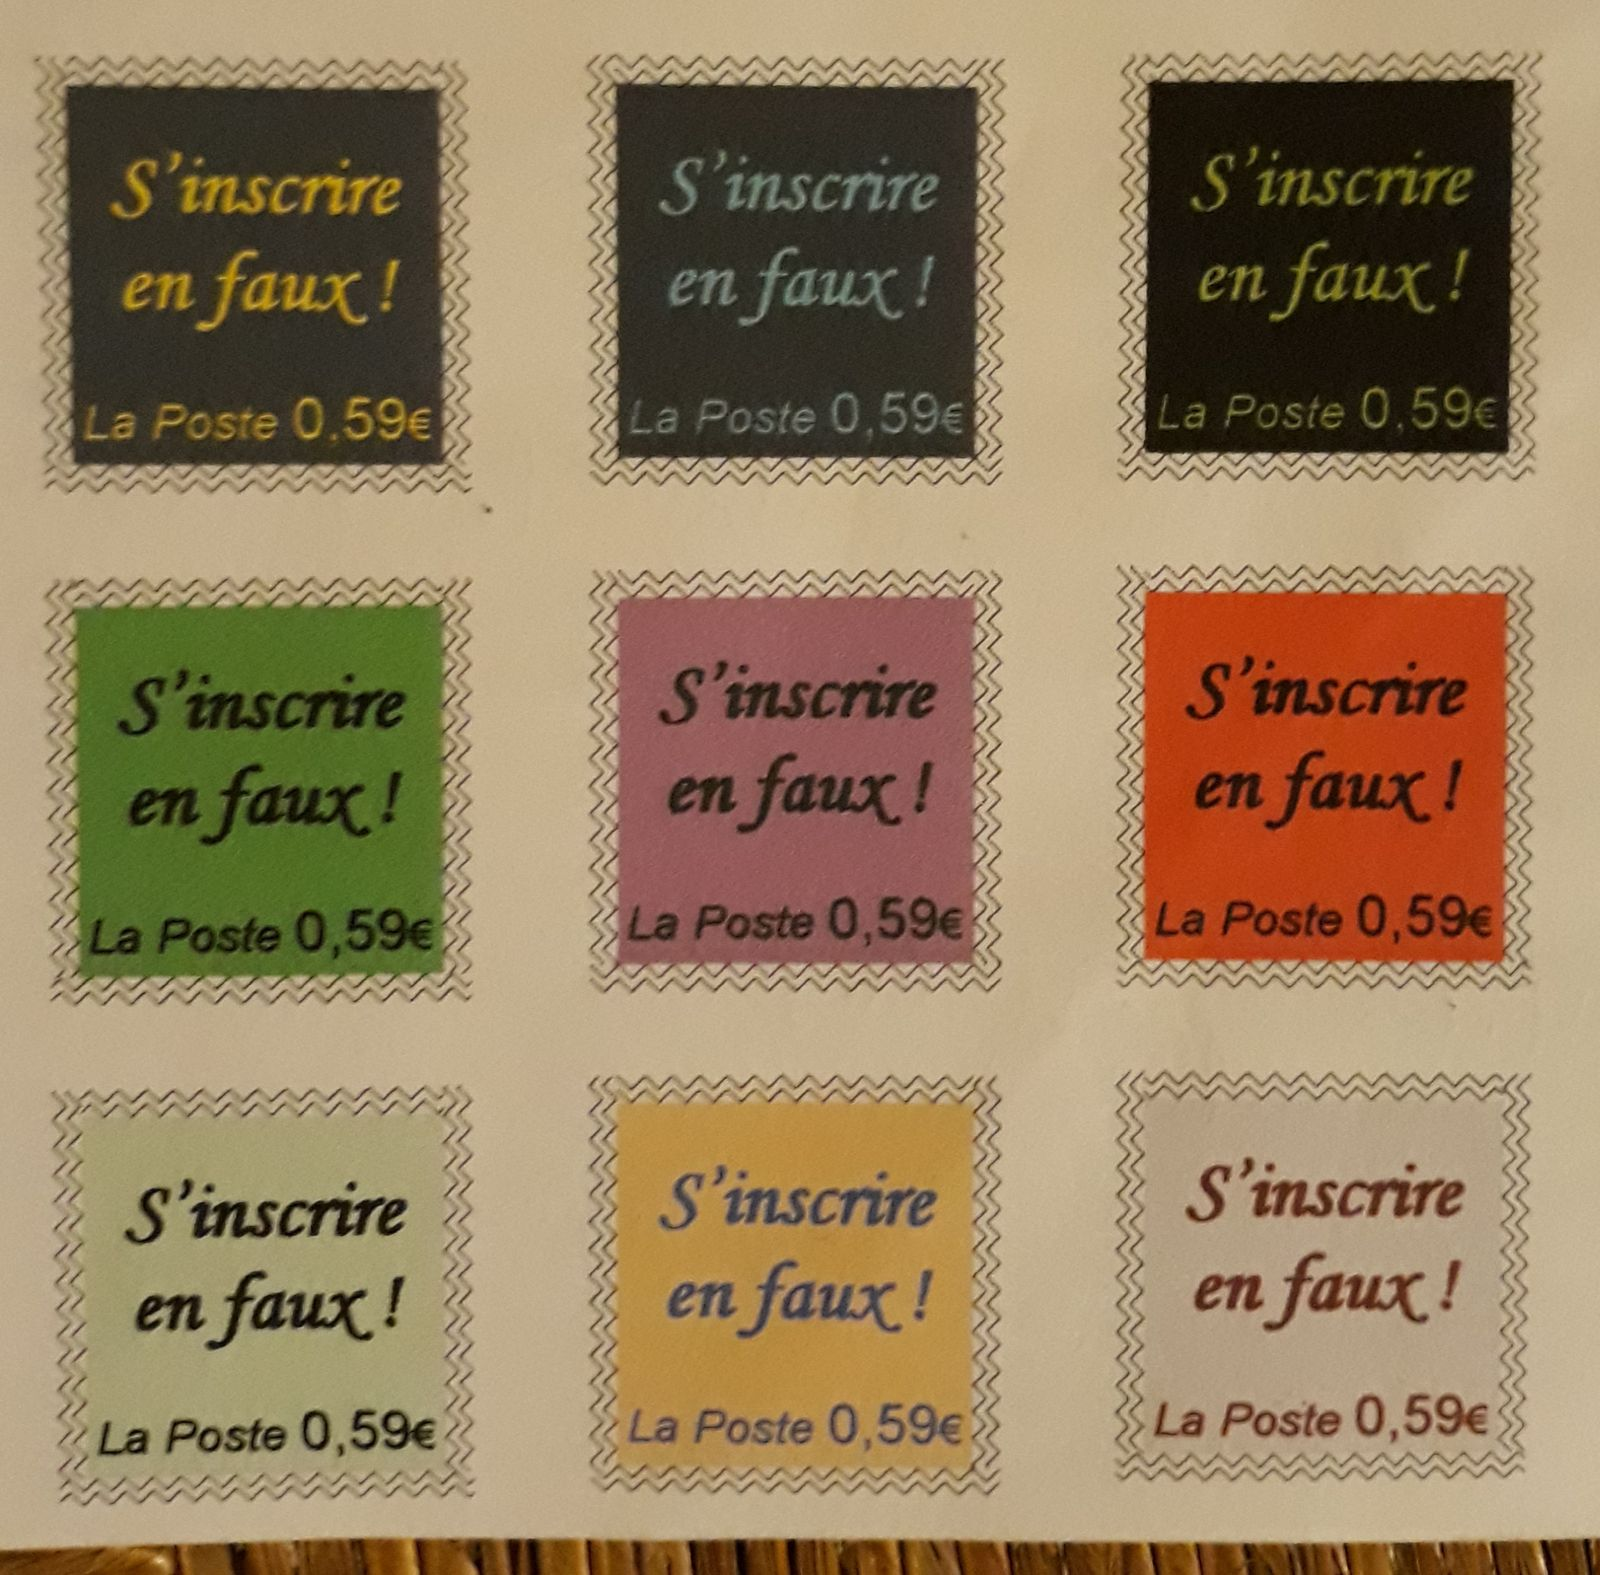 Oeuvres postale d' Eric Babaud